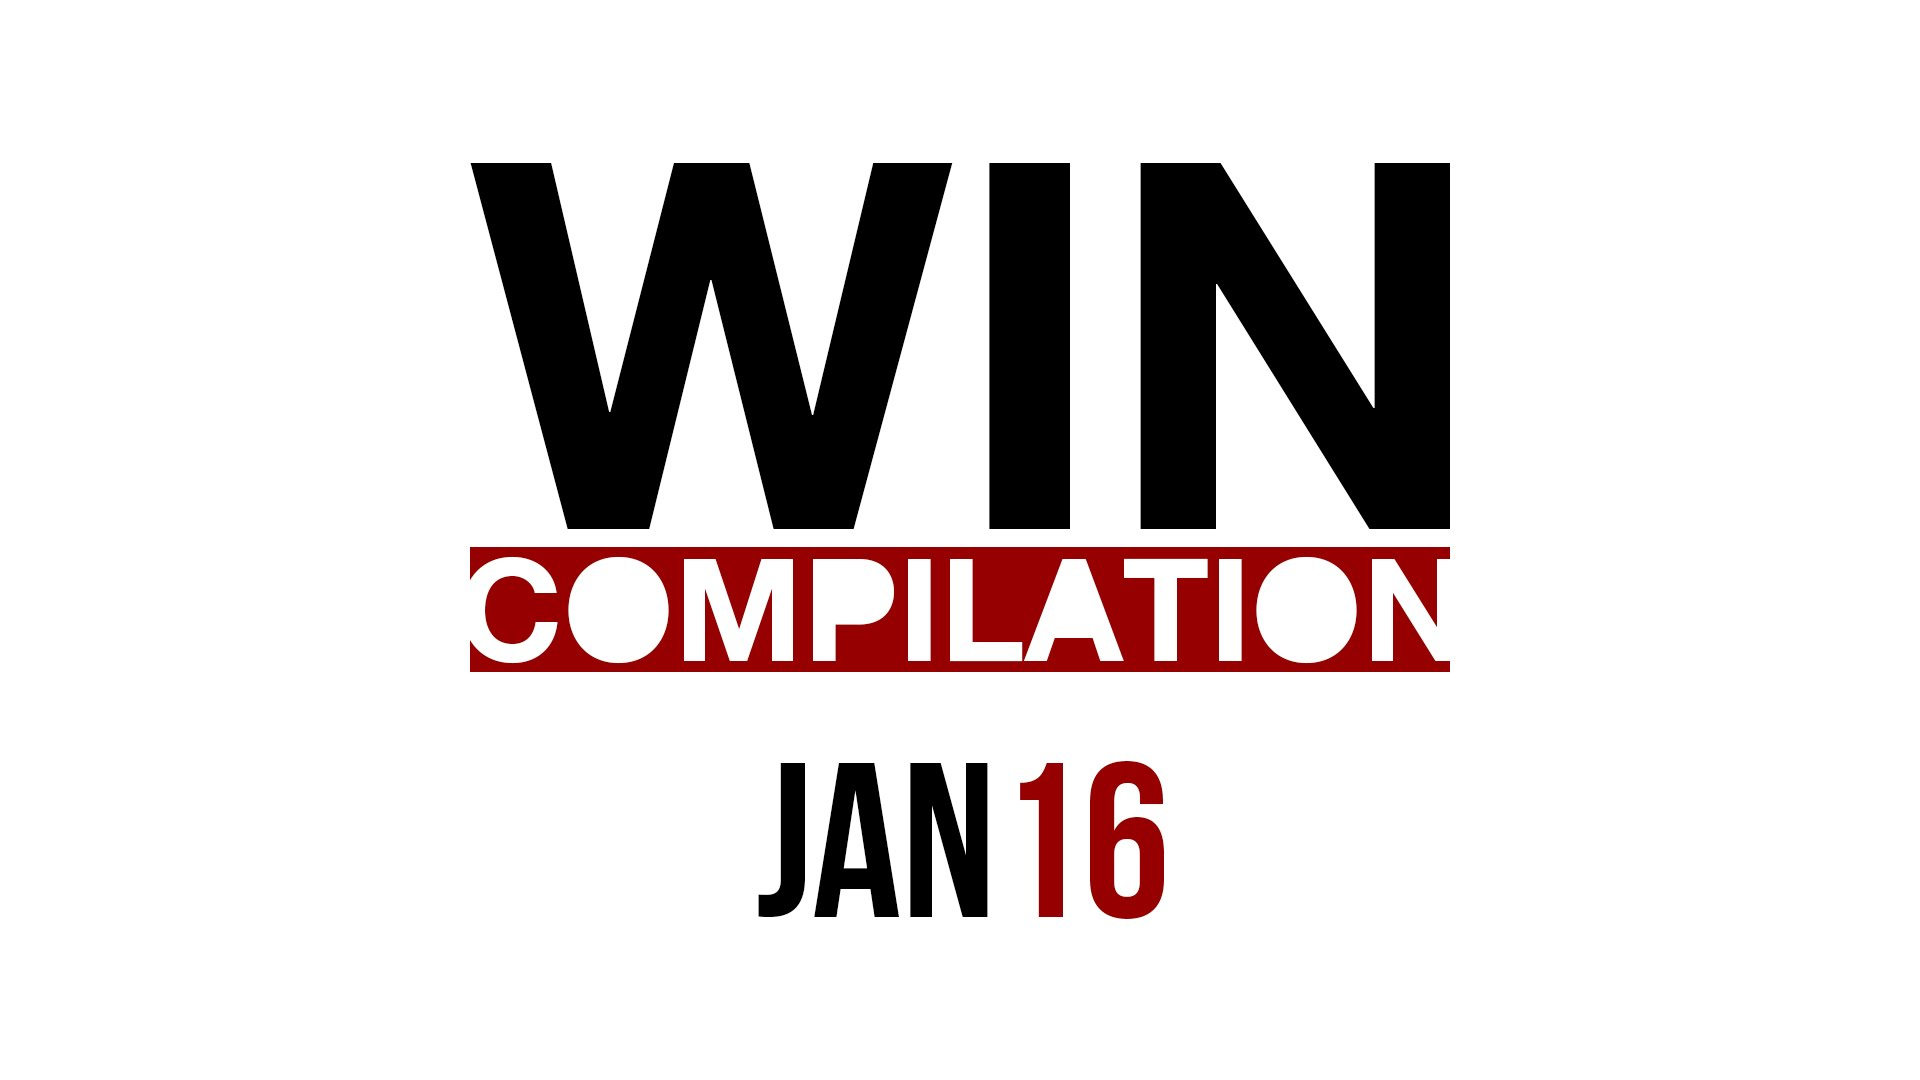 WIN Compilation January 2016